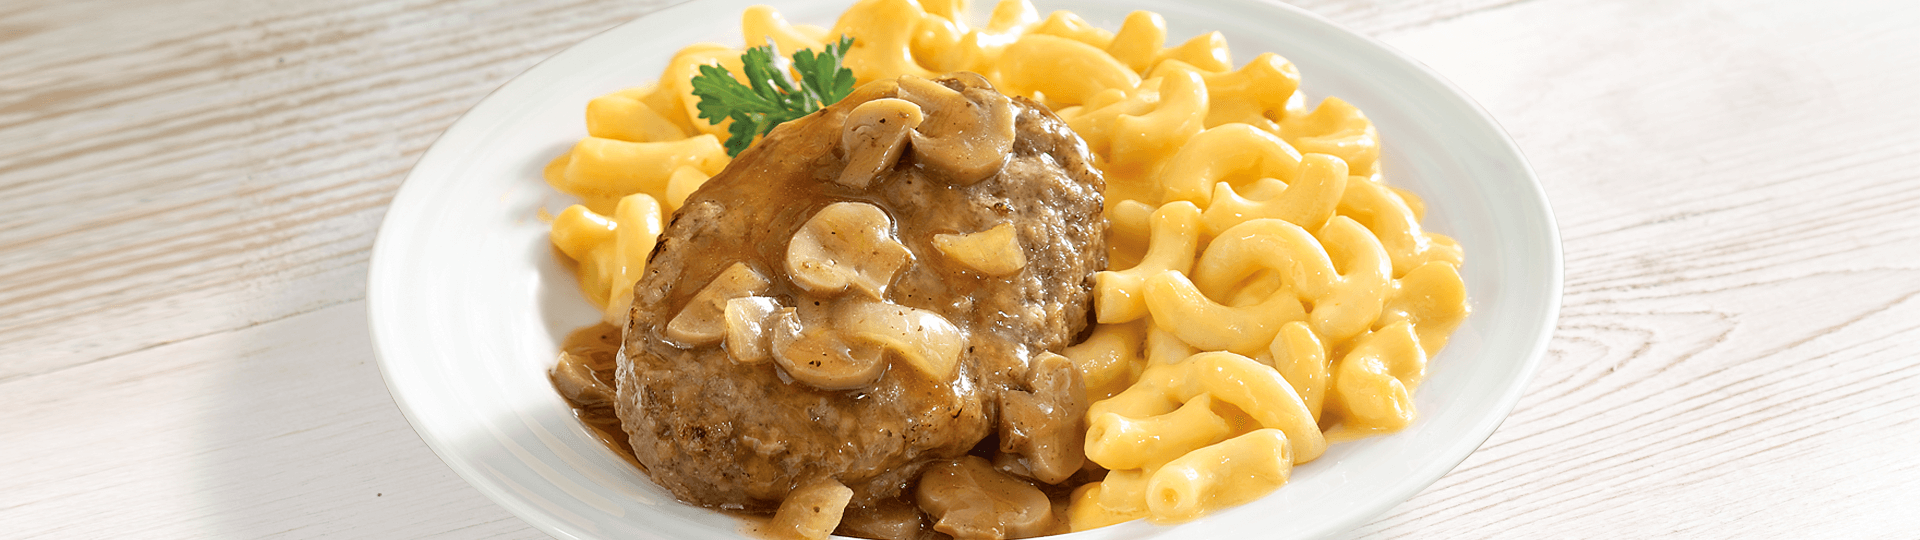 SALISBURY STEAK WITH MACARONI & CHEESE